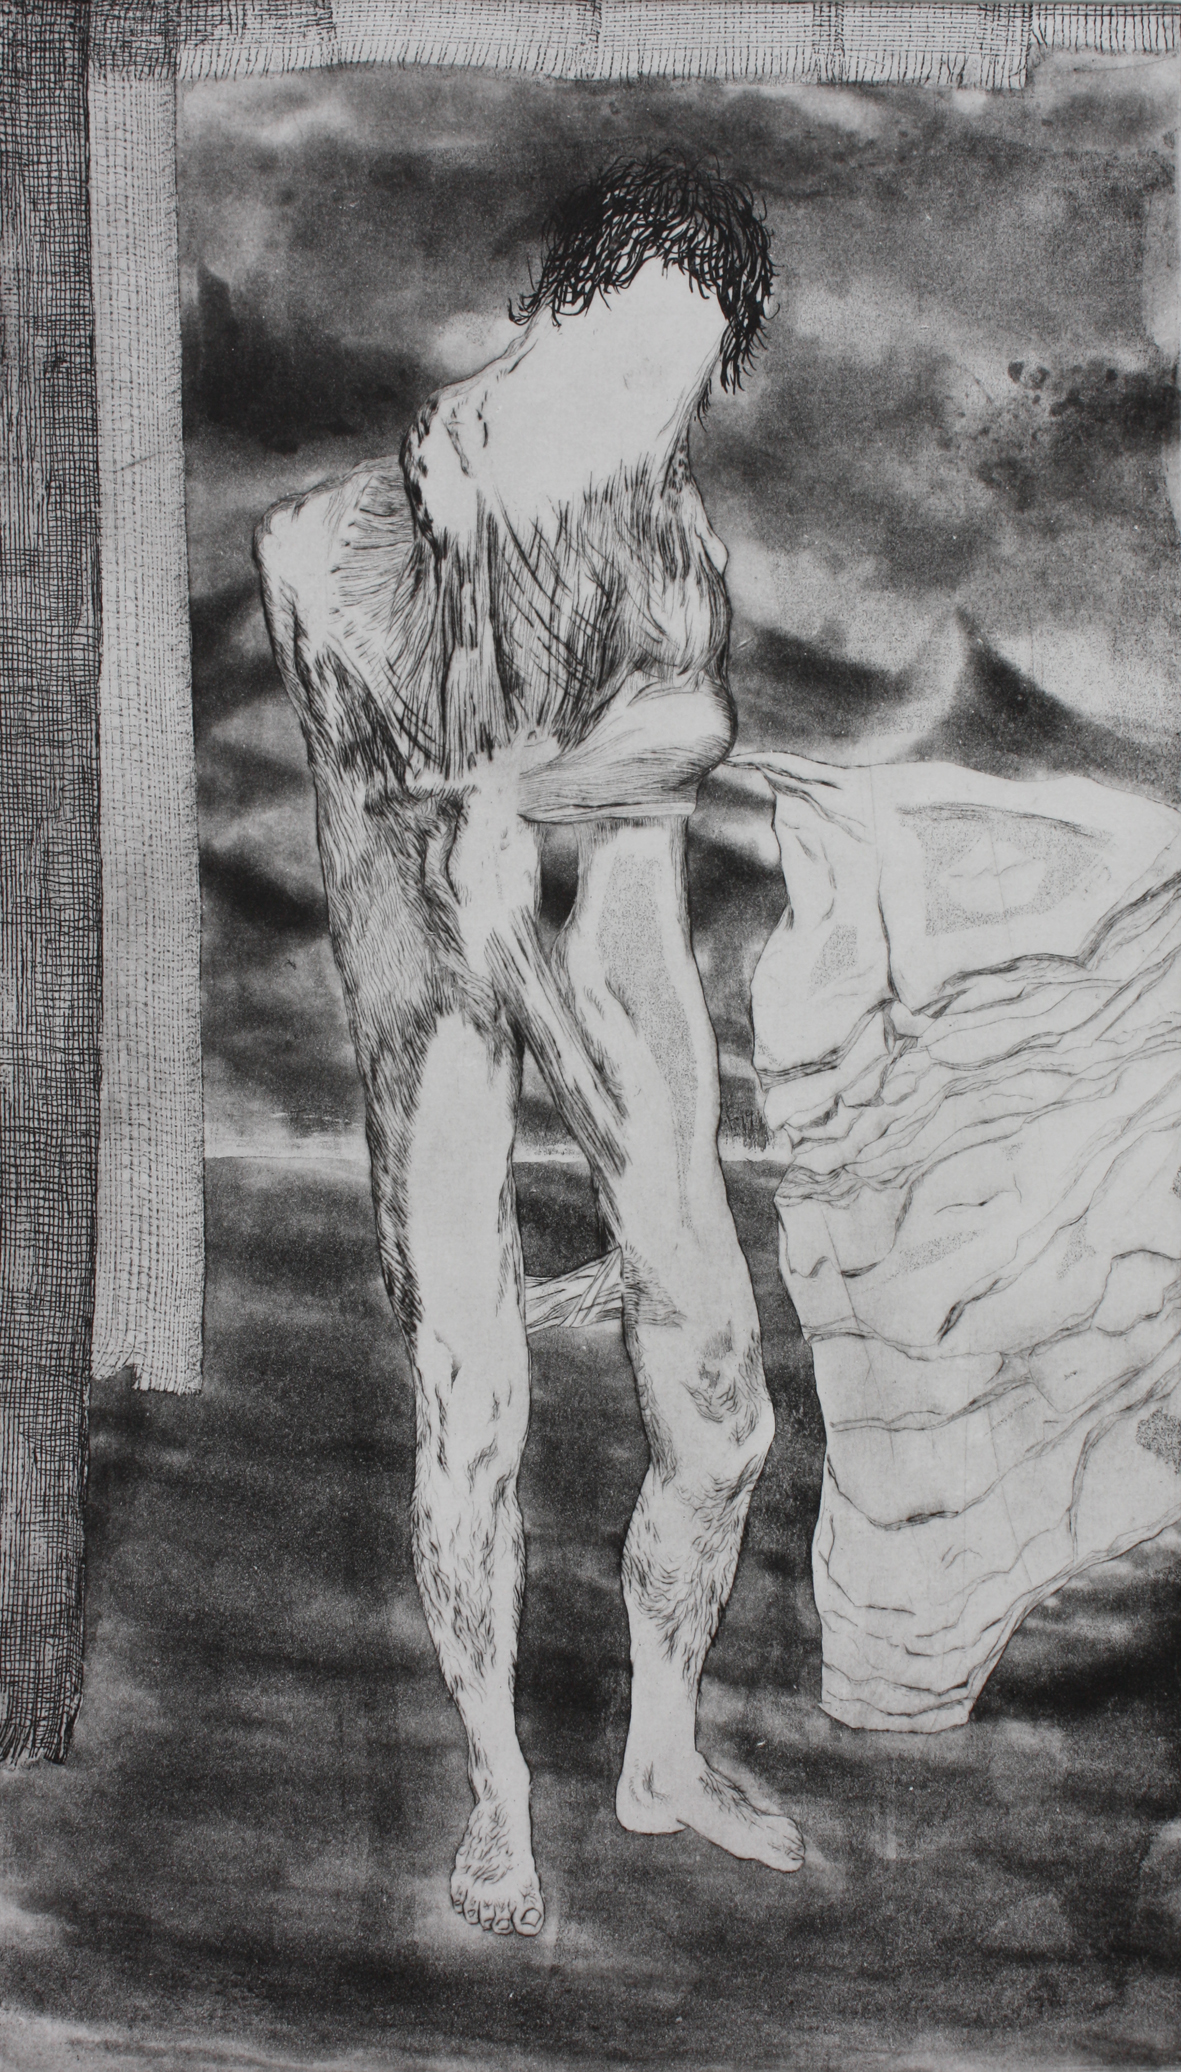 Beefheart in The Quarry (final stage)